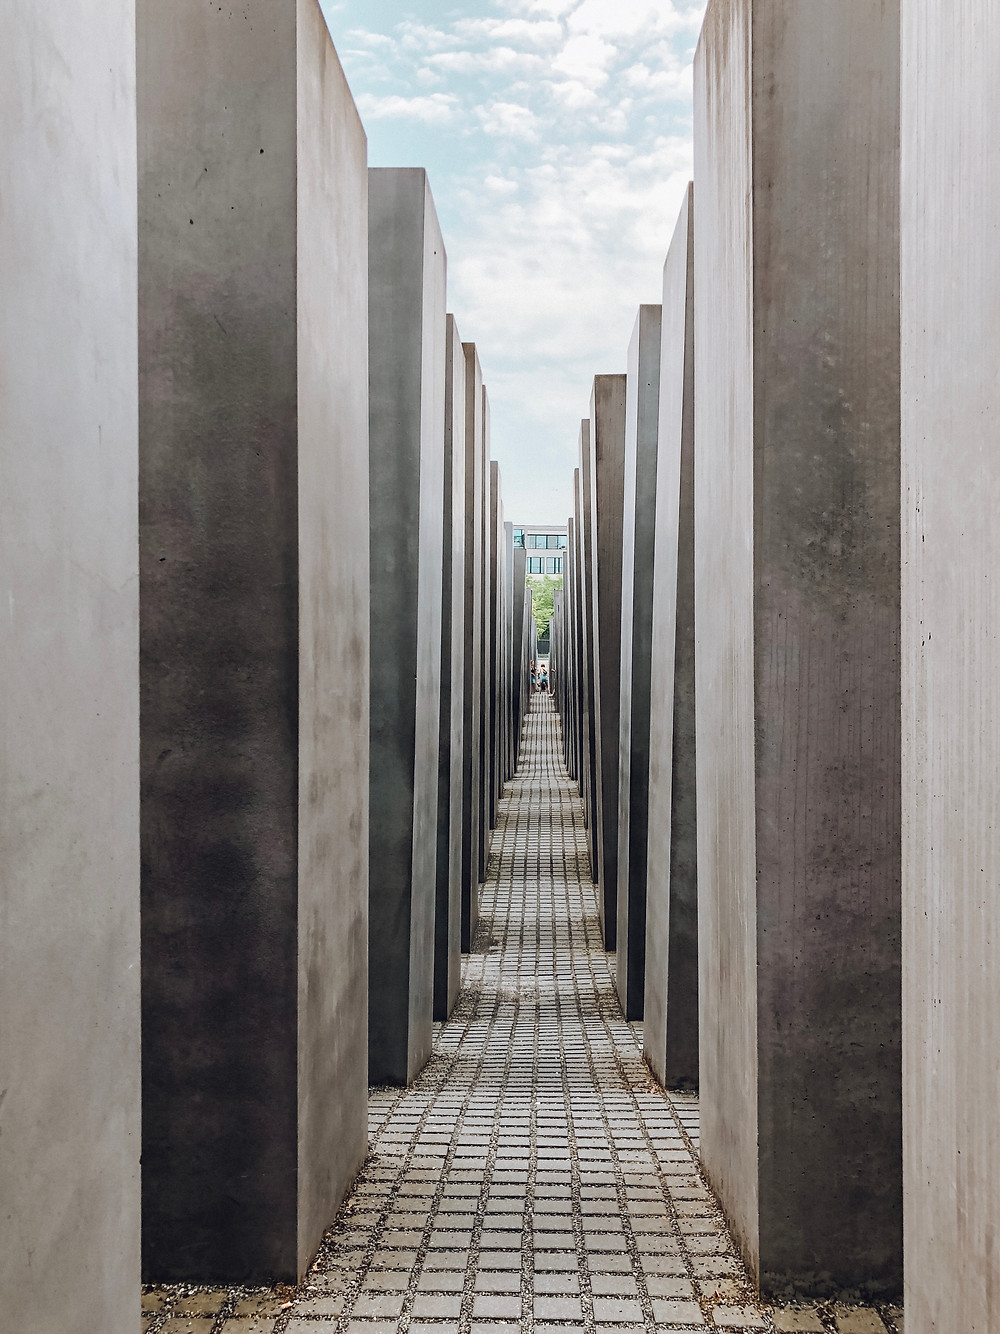 Memorial to the Murdered Jews of Europe Berlin Germany